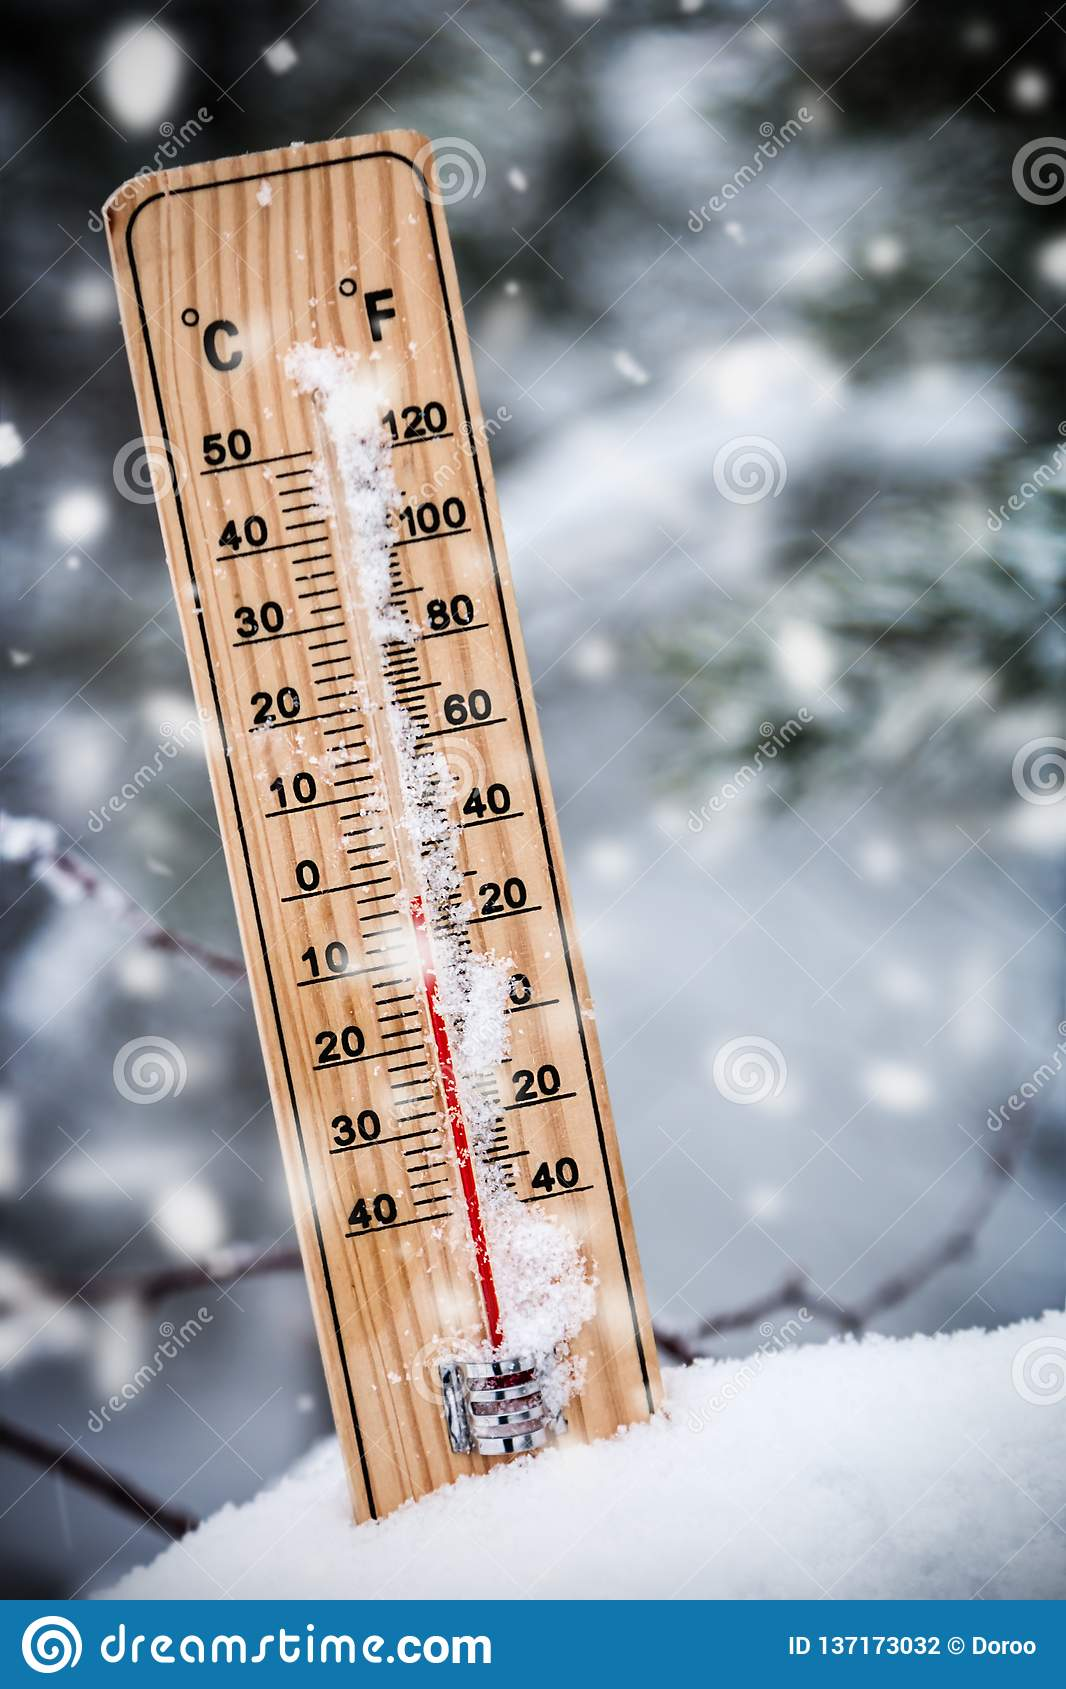 Termometro Con La Temperatura Sotto Zero Attaccato Nella Neve Fotografia Stock Immagine Di Strumento Gennaio 137173032 15,361 likes · 404 talking about this · 937 were here. https it dreamstime com termometro con la temperatura sotto zero attaccato nella neve image137173032